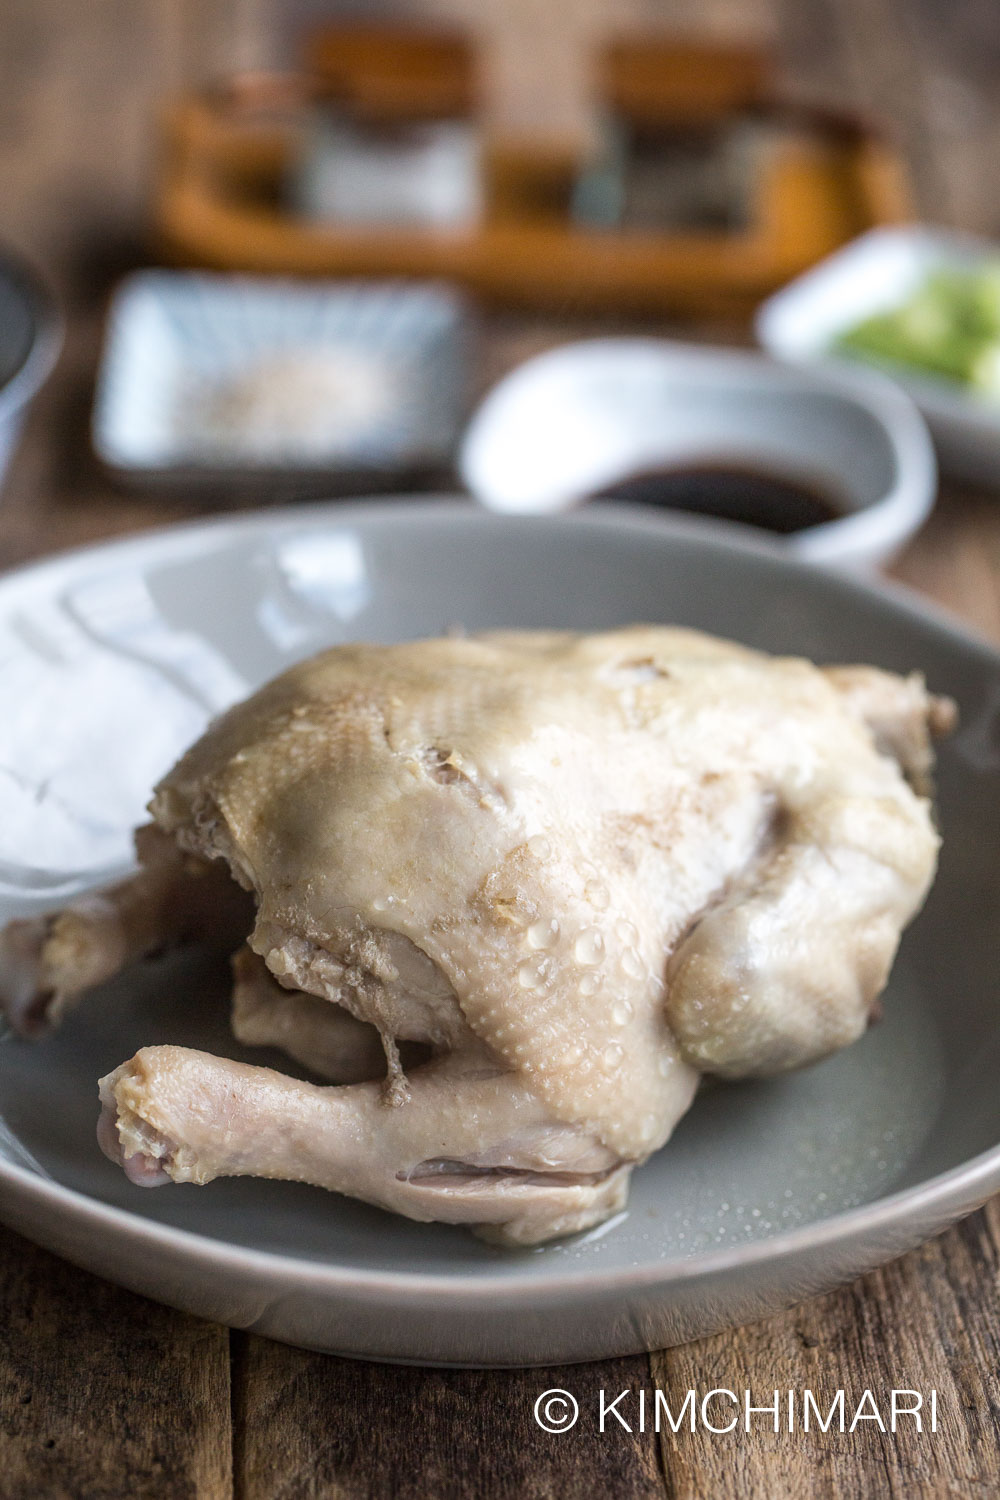 cooked whole chicken on plate with sauces in the background